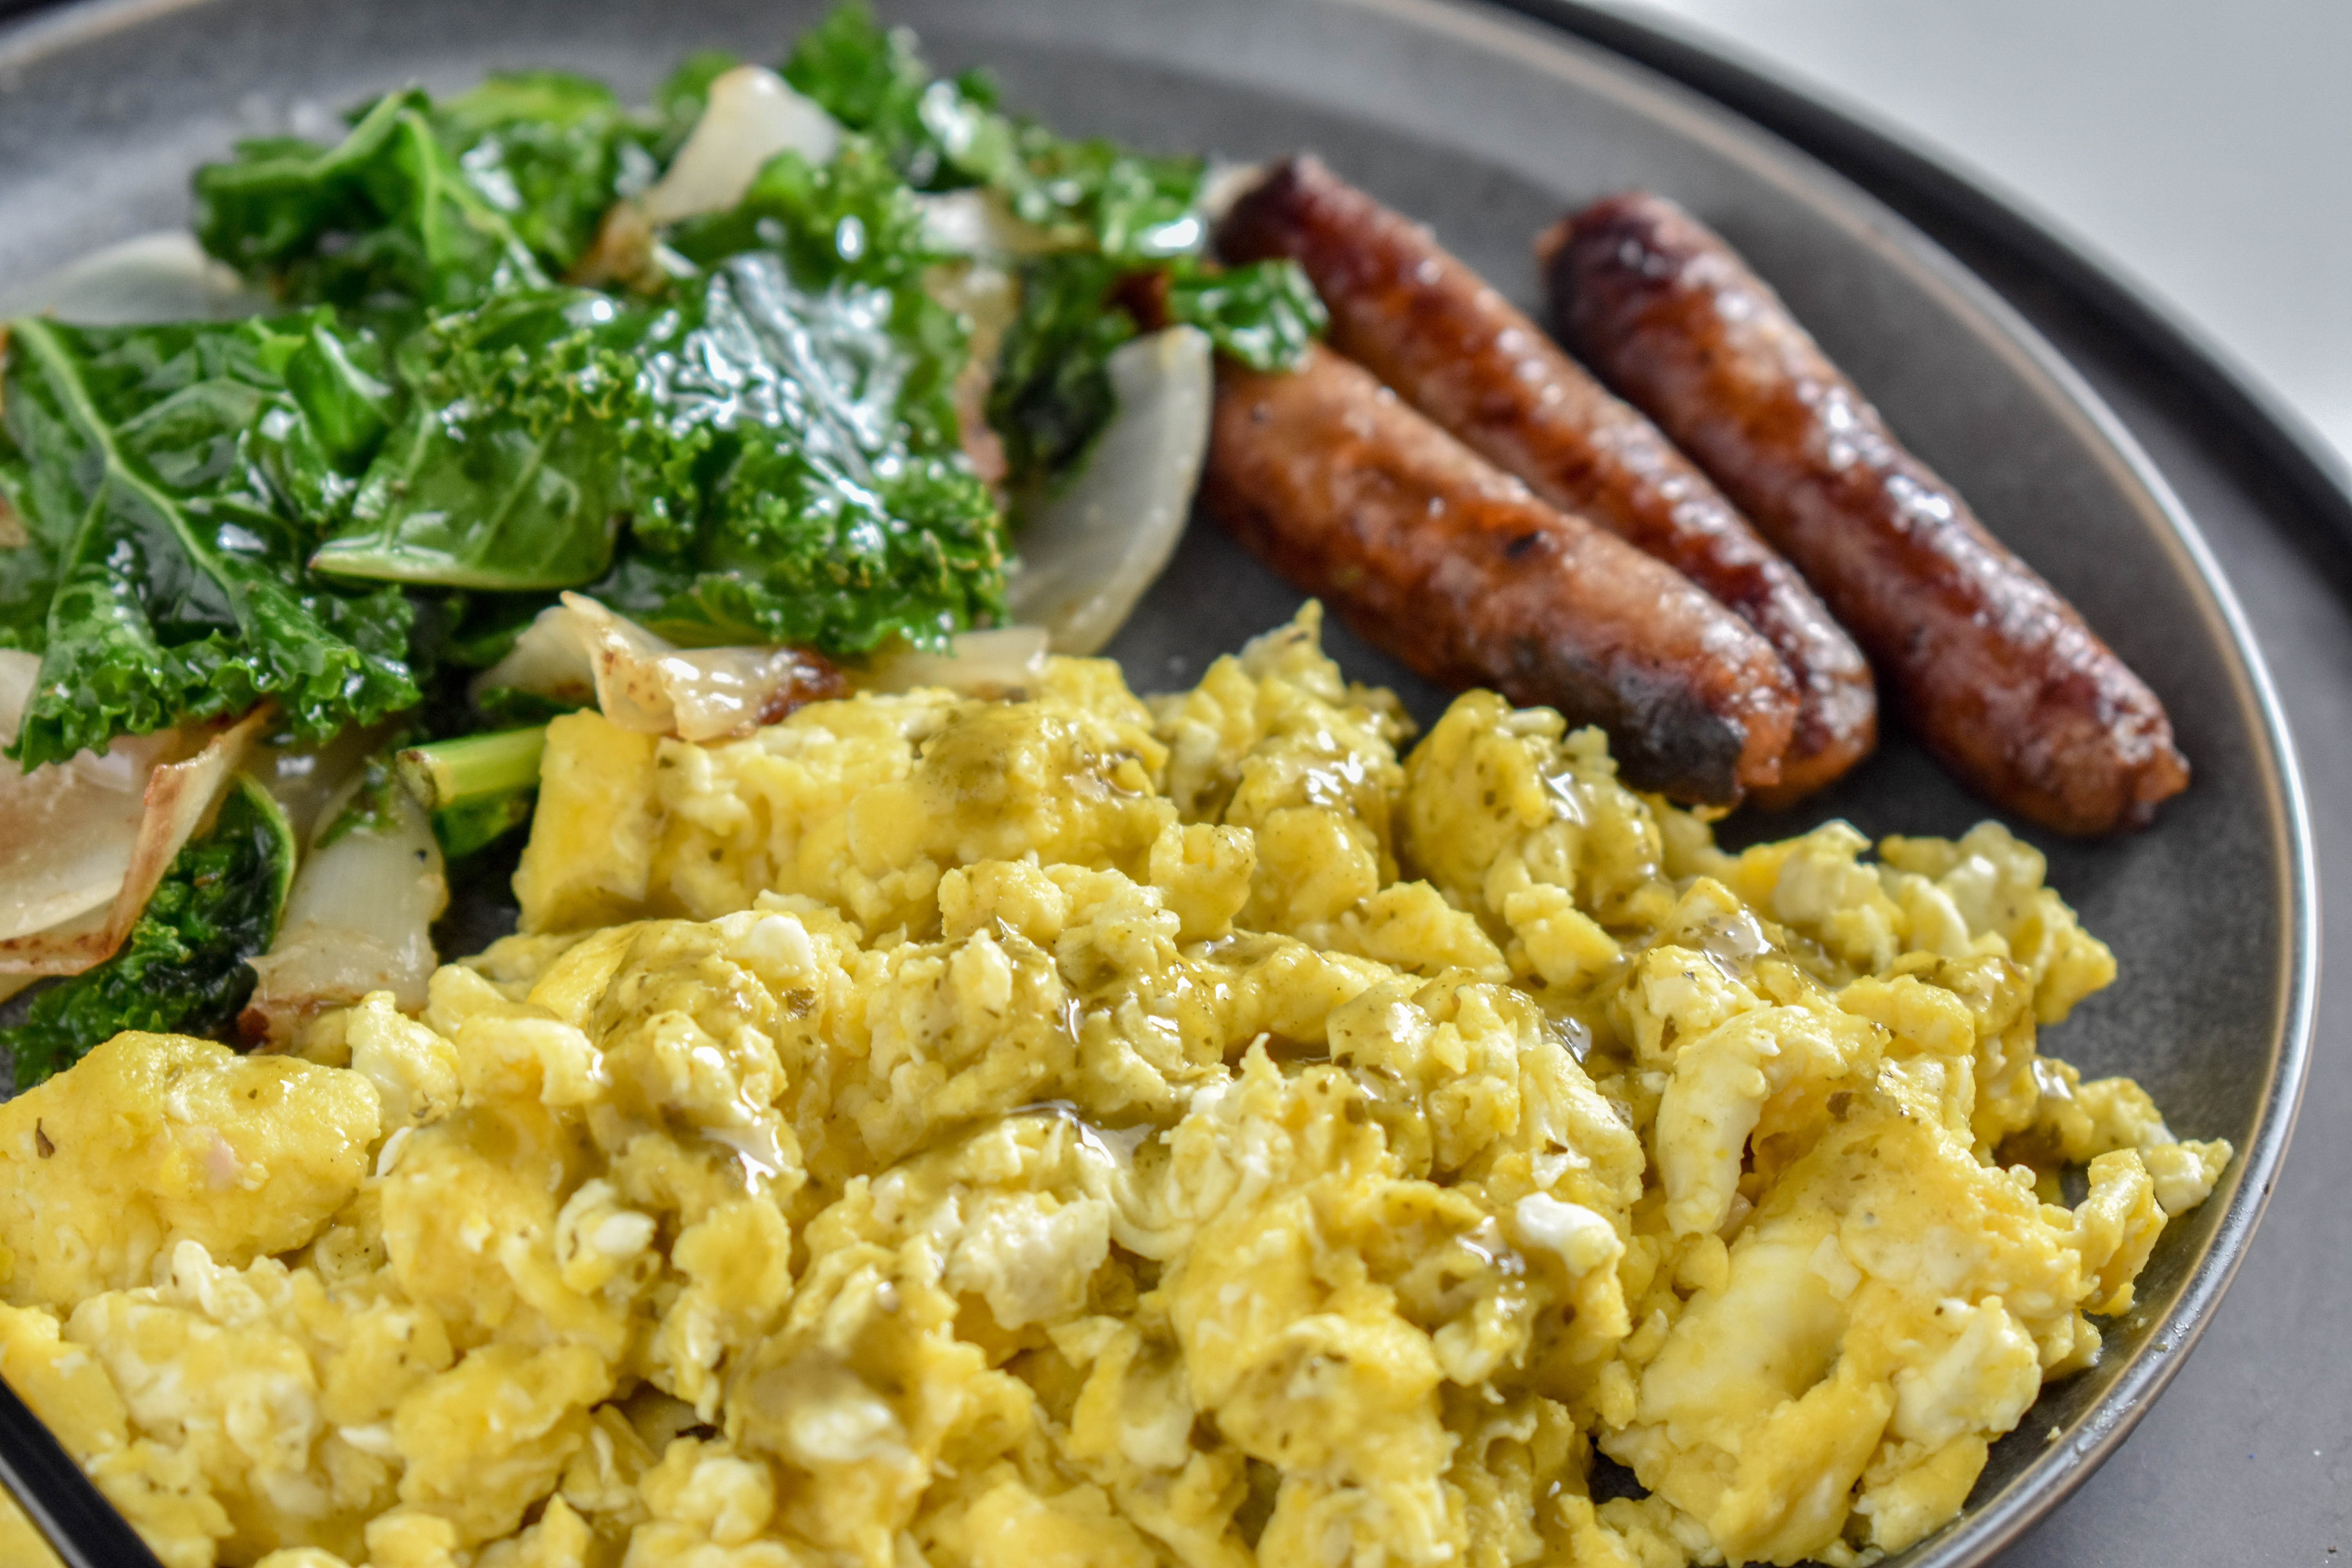 Scrambled eggs with sausage links and a side of sauteed onions and kale sitting on a dark grey plate.